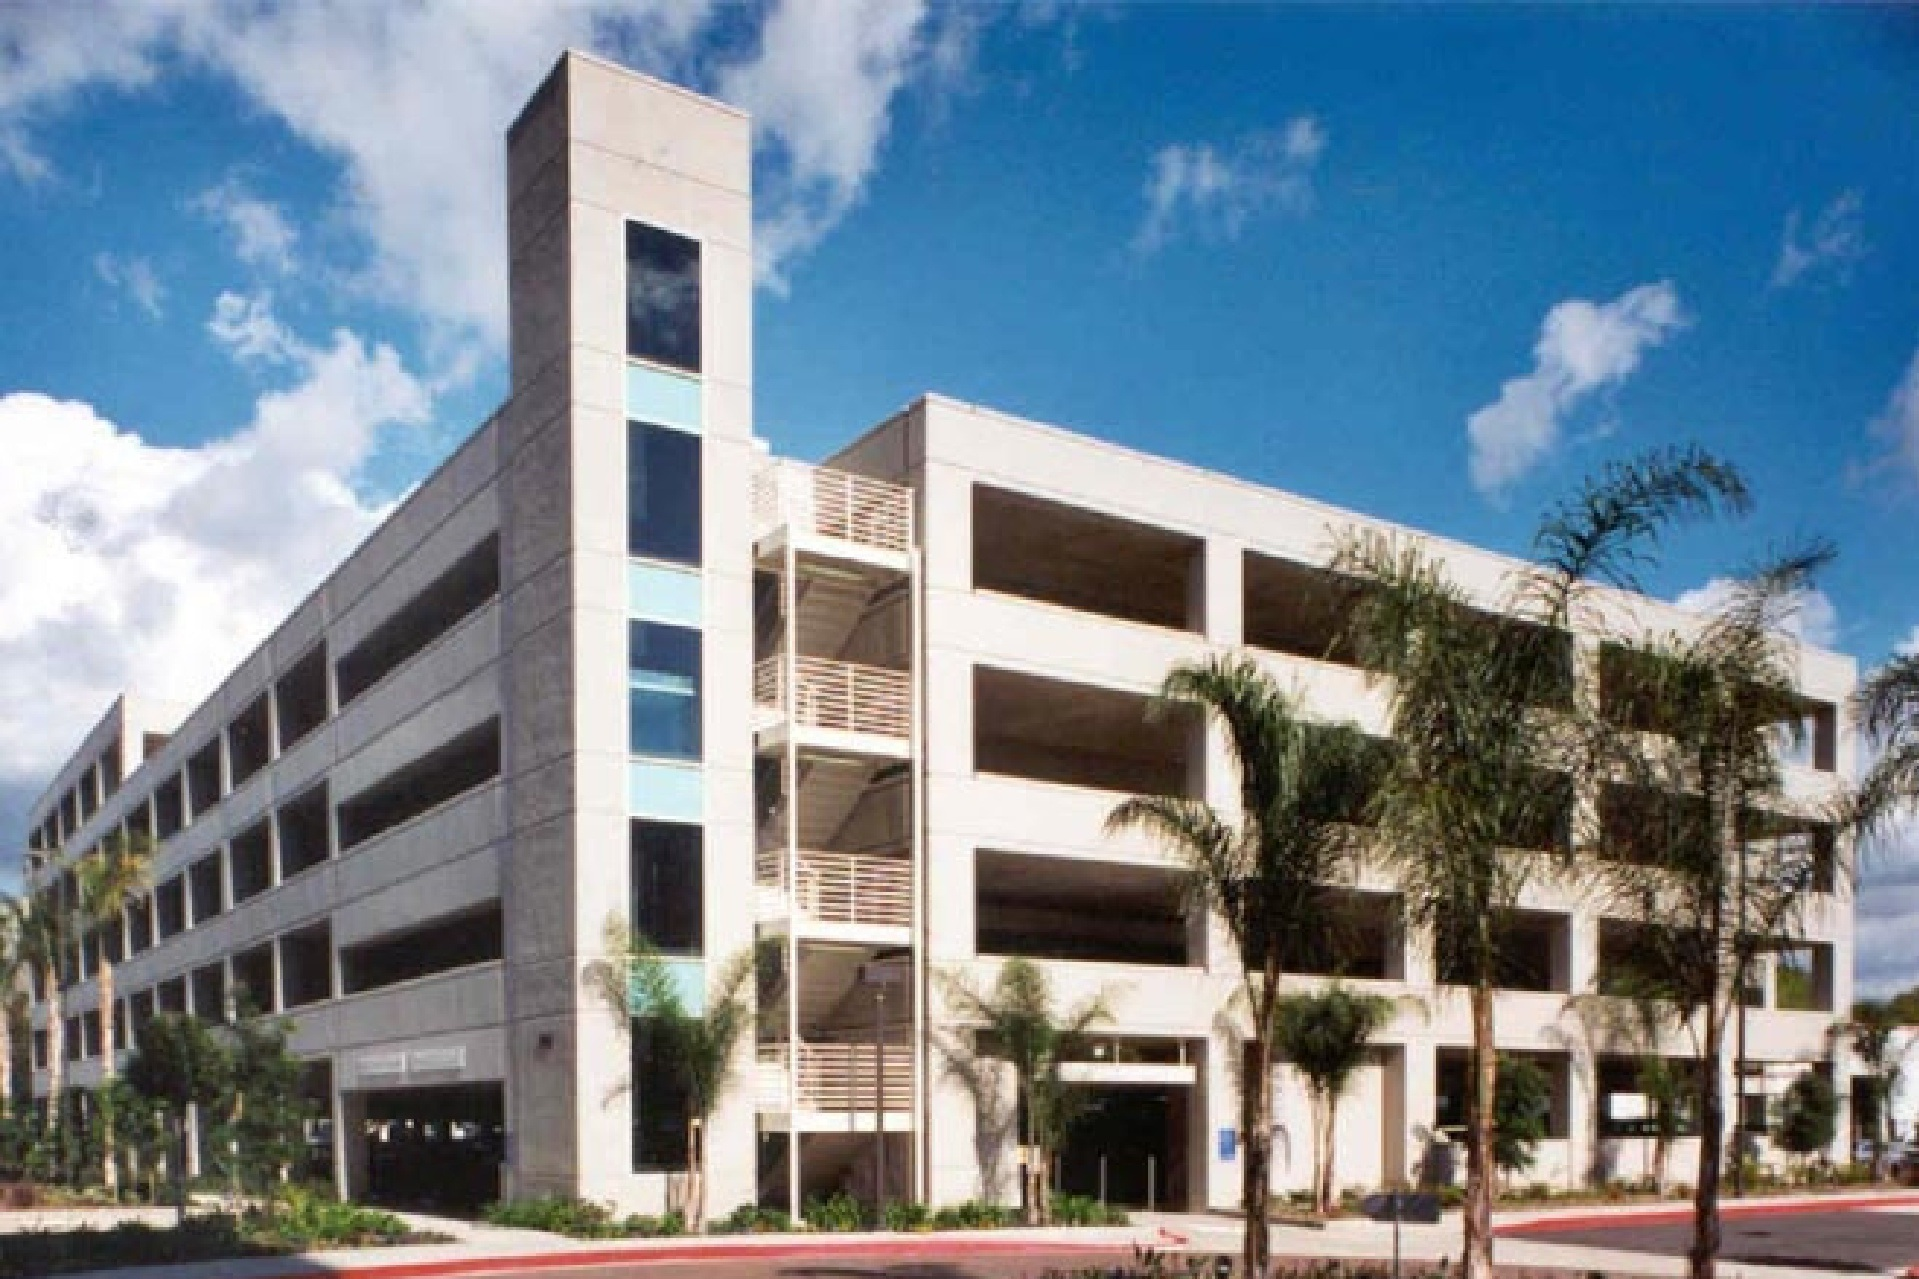 1905 MAIN STREET PARKING STRUCTURE - Irvine, CASix story post-tensioned concrete structure for 530 cars.Contractor: BOMEL CONSTRUCTIONArchitect: CHOATE PARKING CONSULTANTS